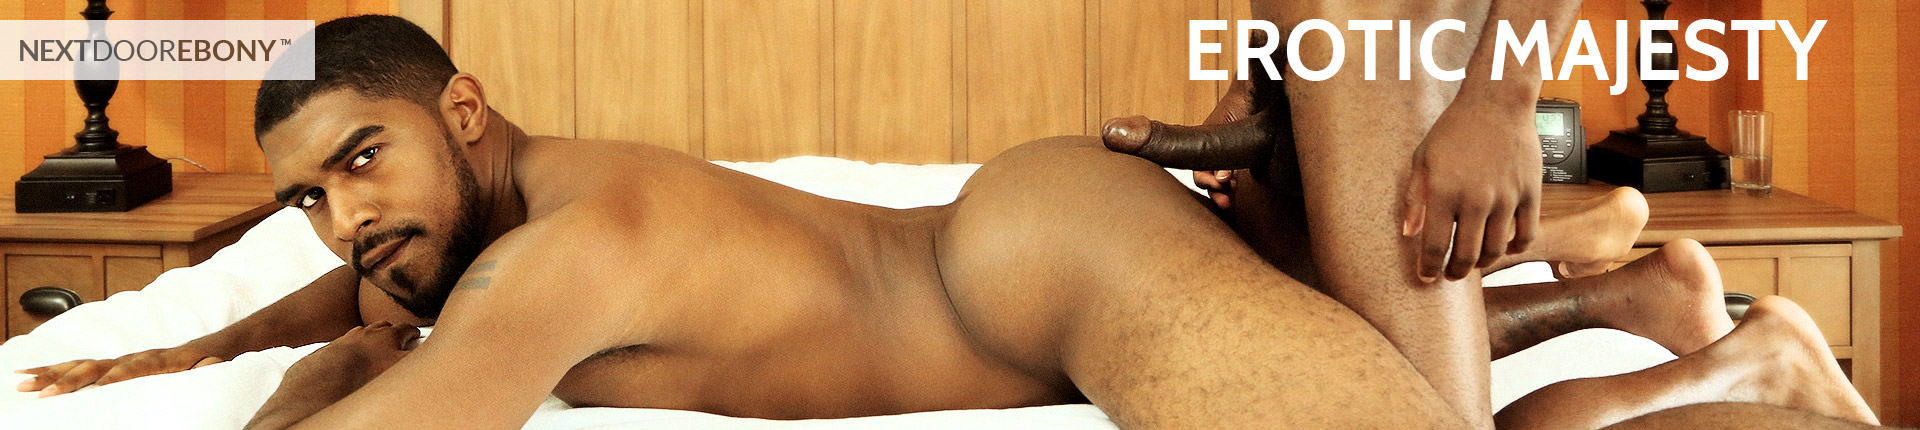 black gay male sex videos As Much As I Can' Lifts Up Black Gay Men Plagued by HIV.